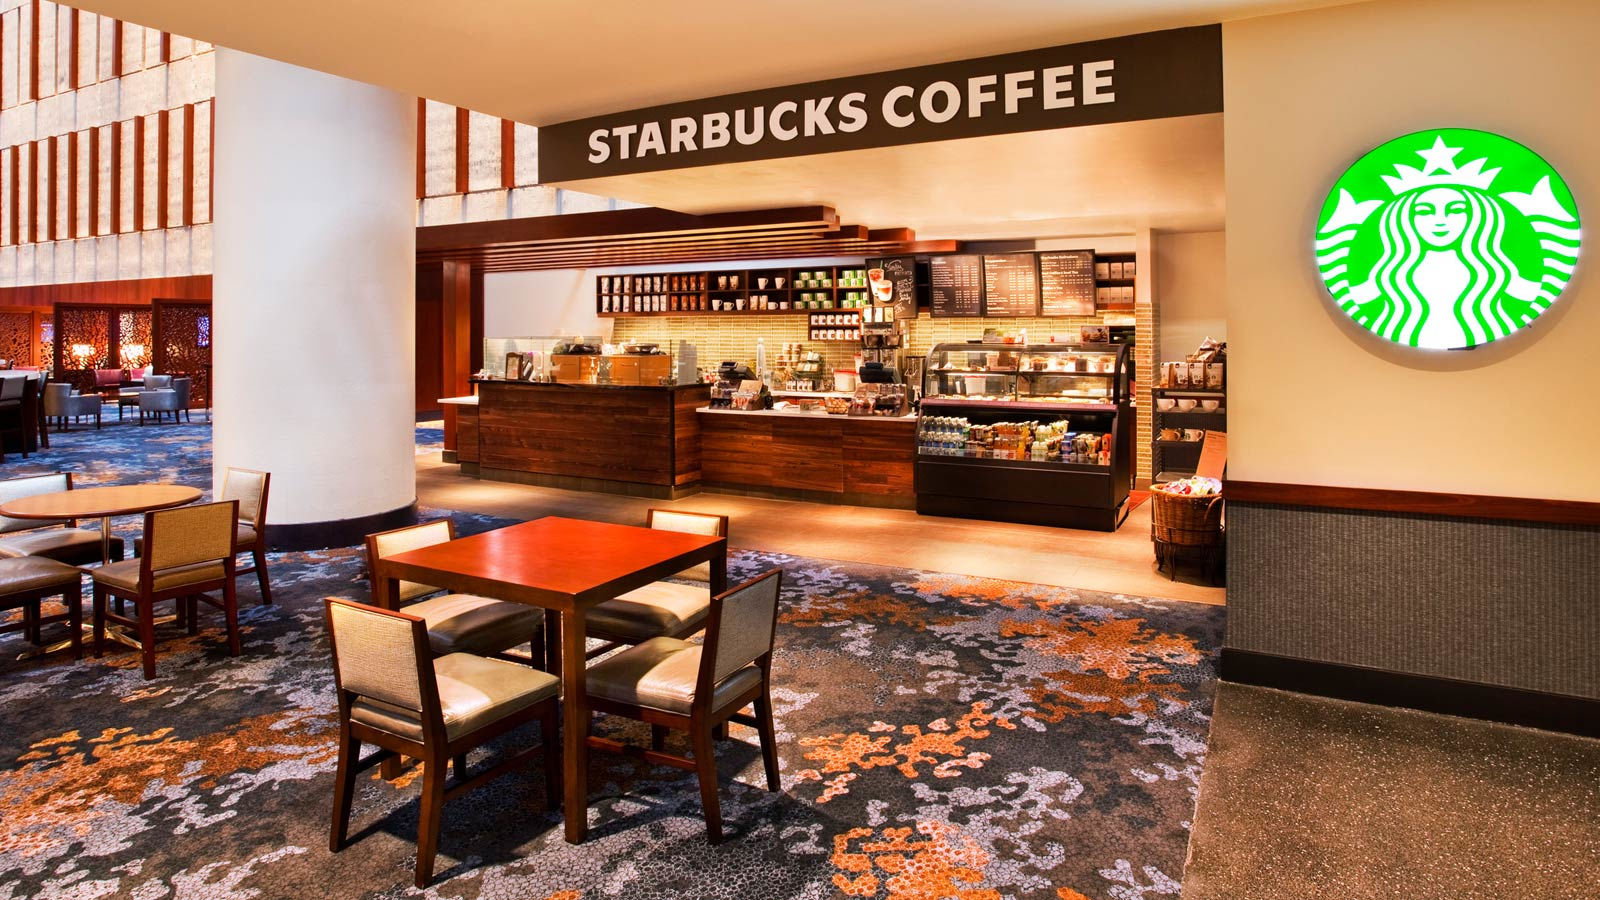 Downtown Atlanta Restaurants - Starbucks